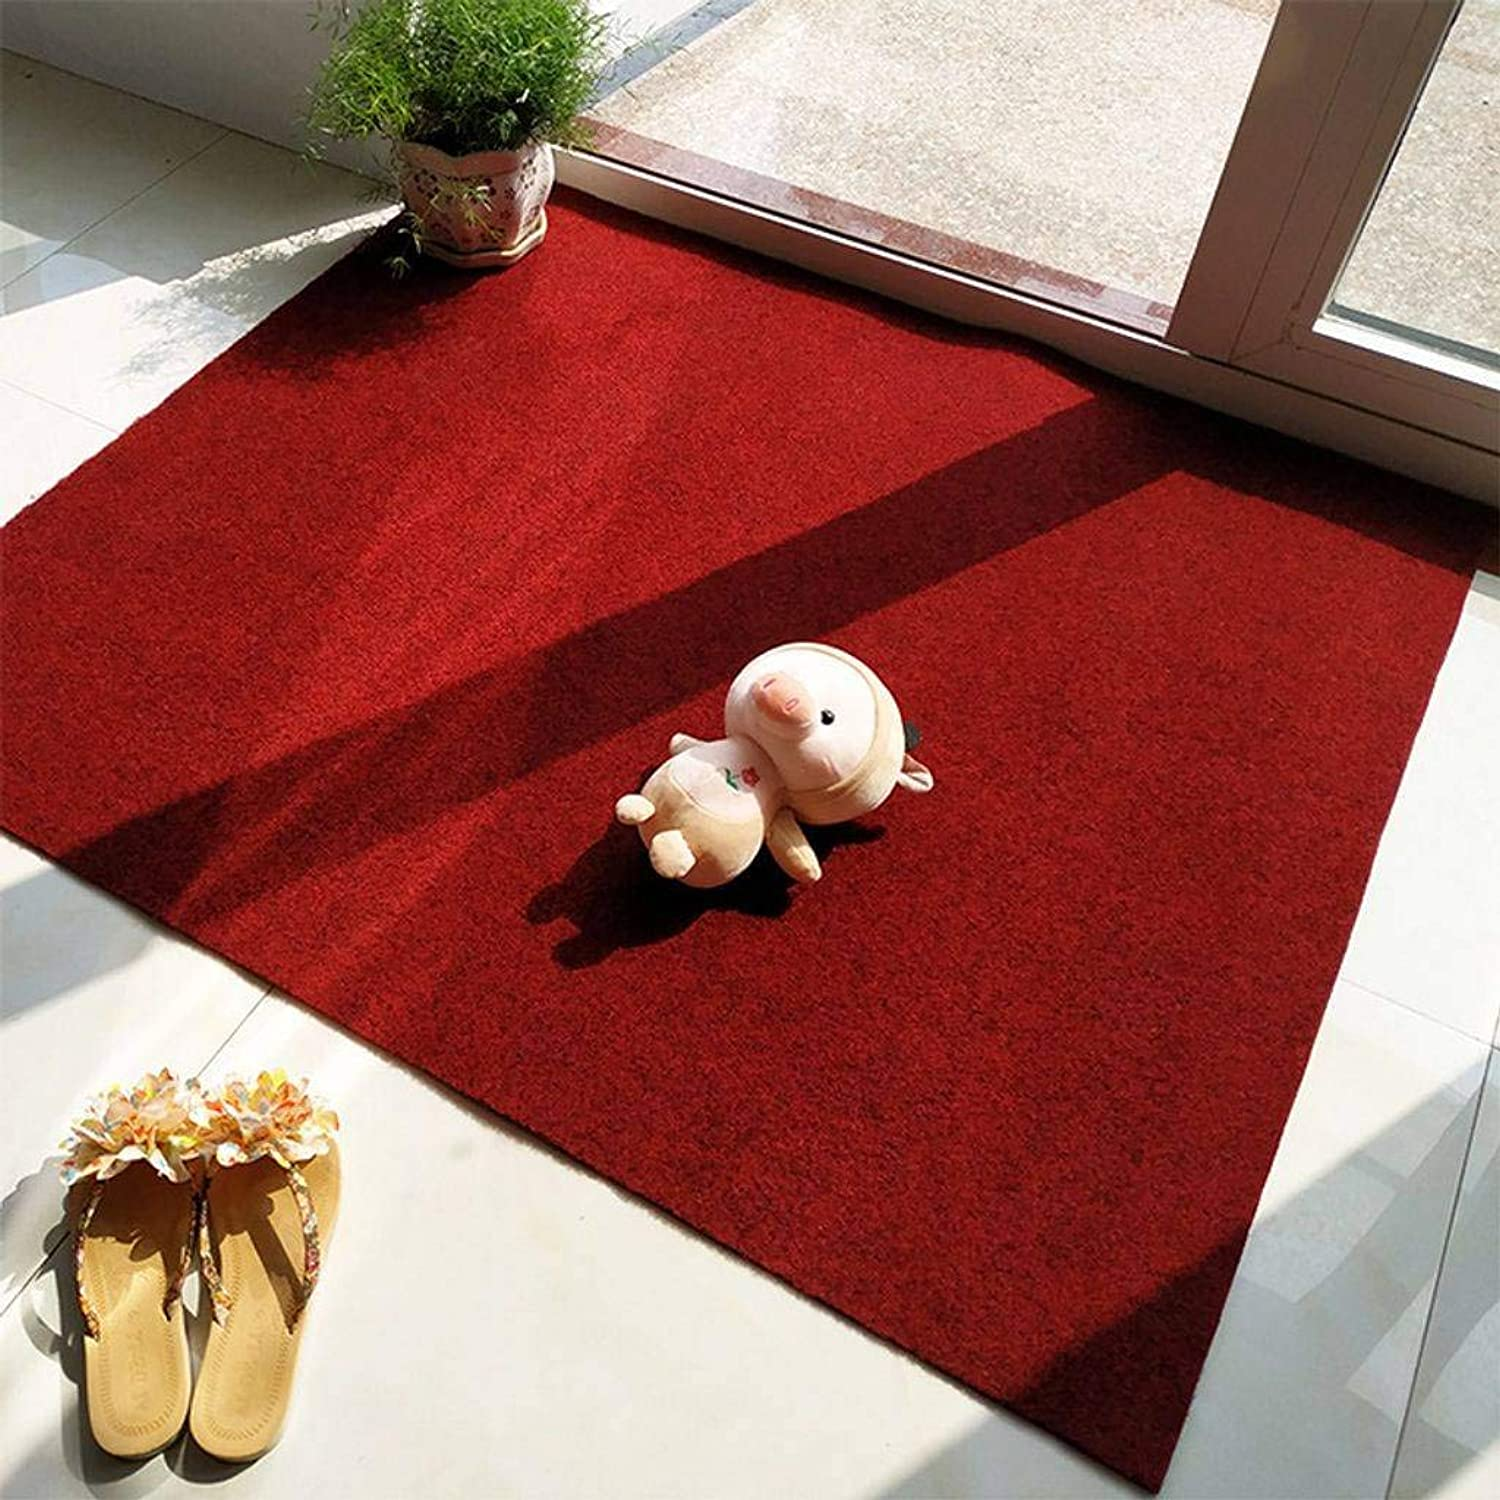 Indoor Outdoor Doormat, Non-Slip TPR Backing Absorbing Mud Cleanable Thickened Dust Pads for Entrances, Stairs, Terraces and Garages-Dark red-80x120Cm(31x47Inch)